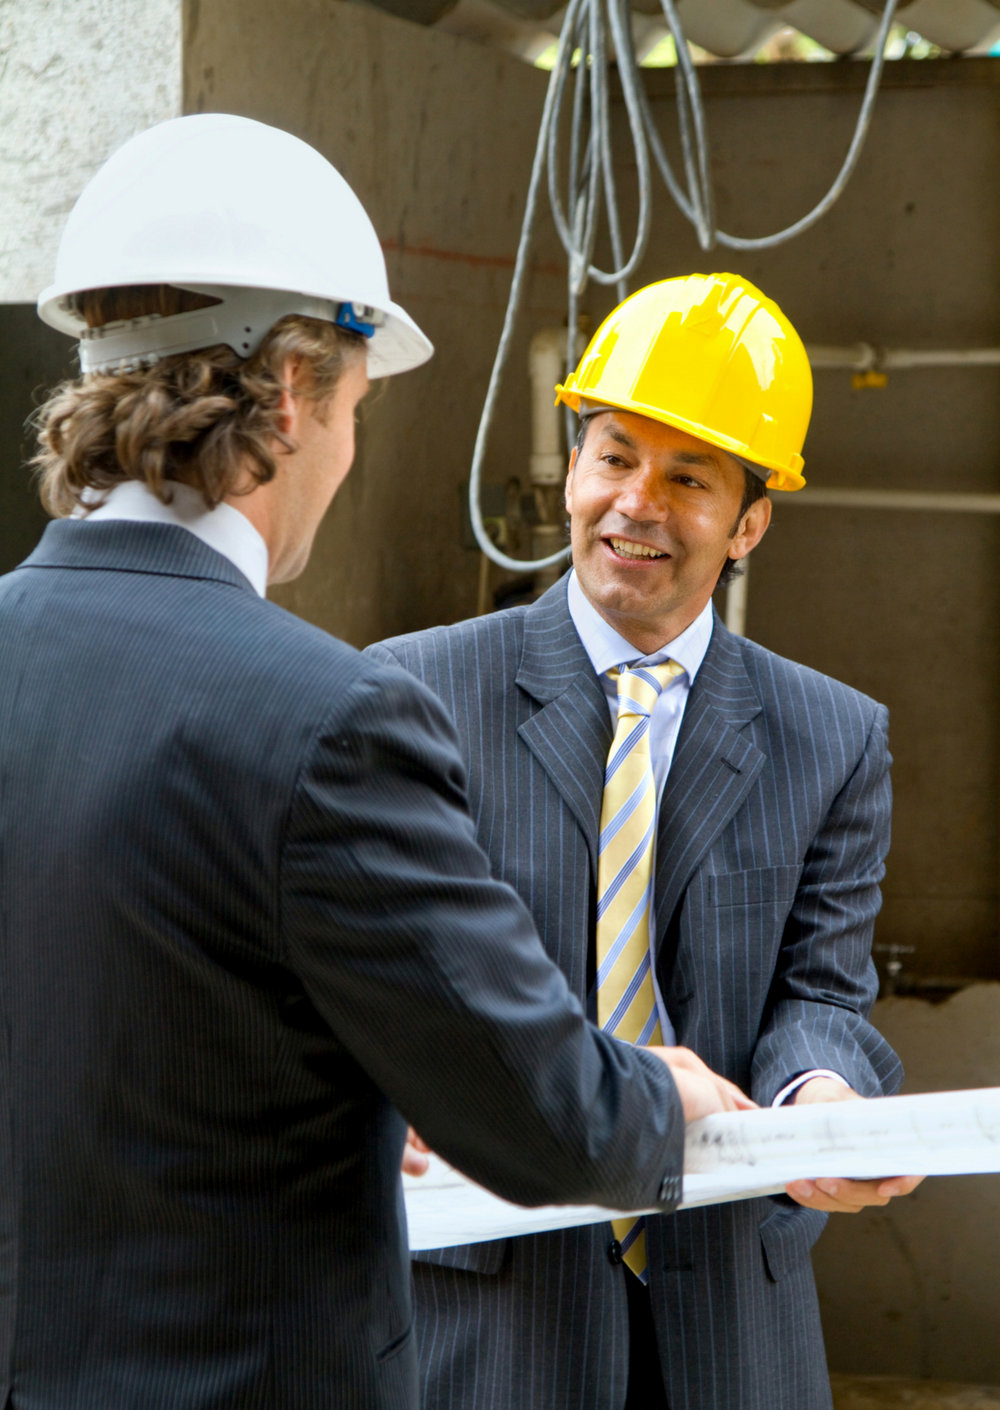 Burks and Co - Commercial and Residential Contractors in Williamson County.jpg